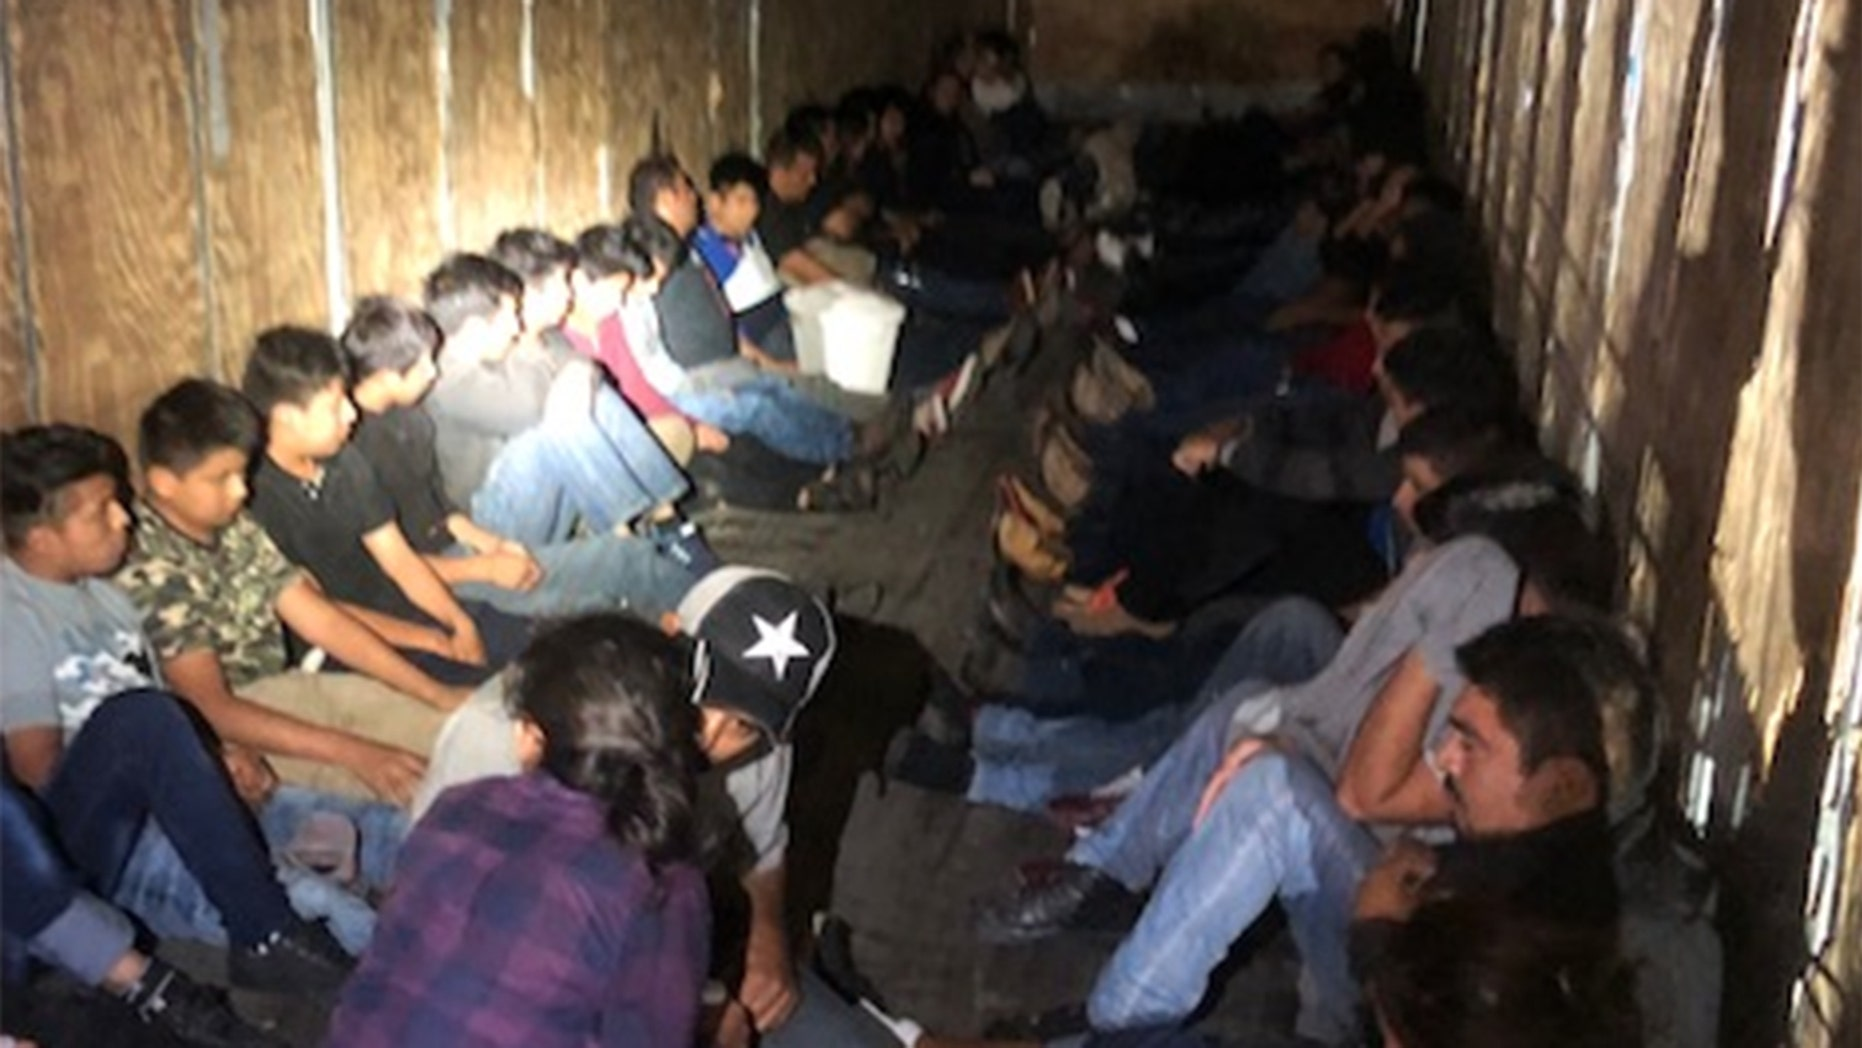 Fifty-nine illegal immigrants were found trying to enter the U.S. inside of a tractor-trailer.